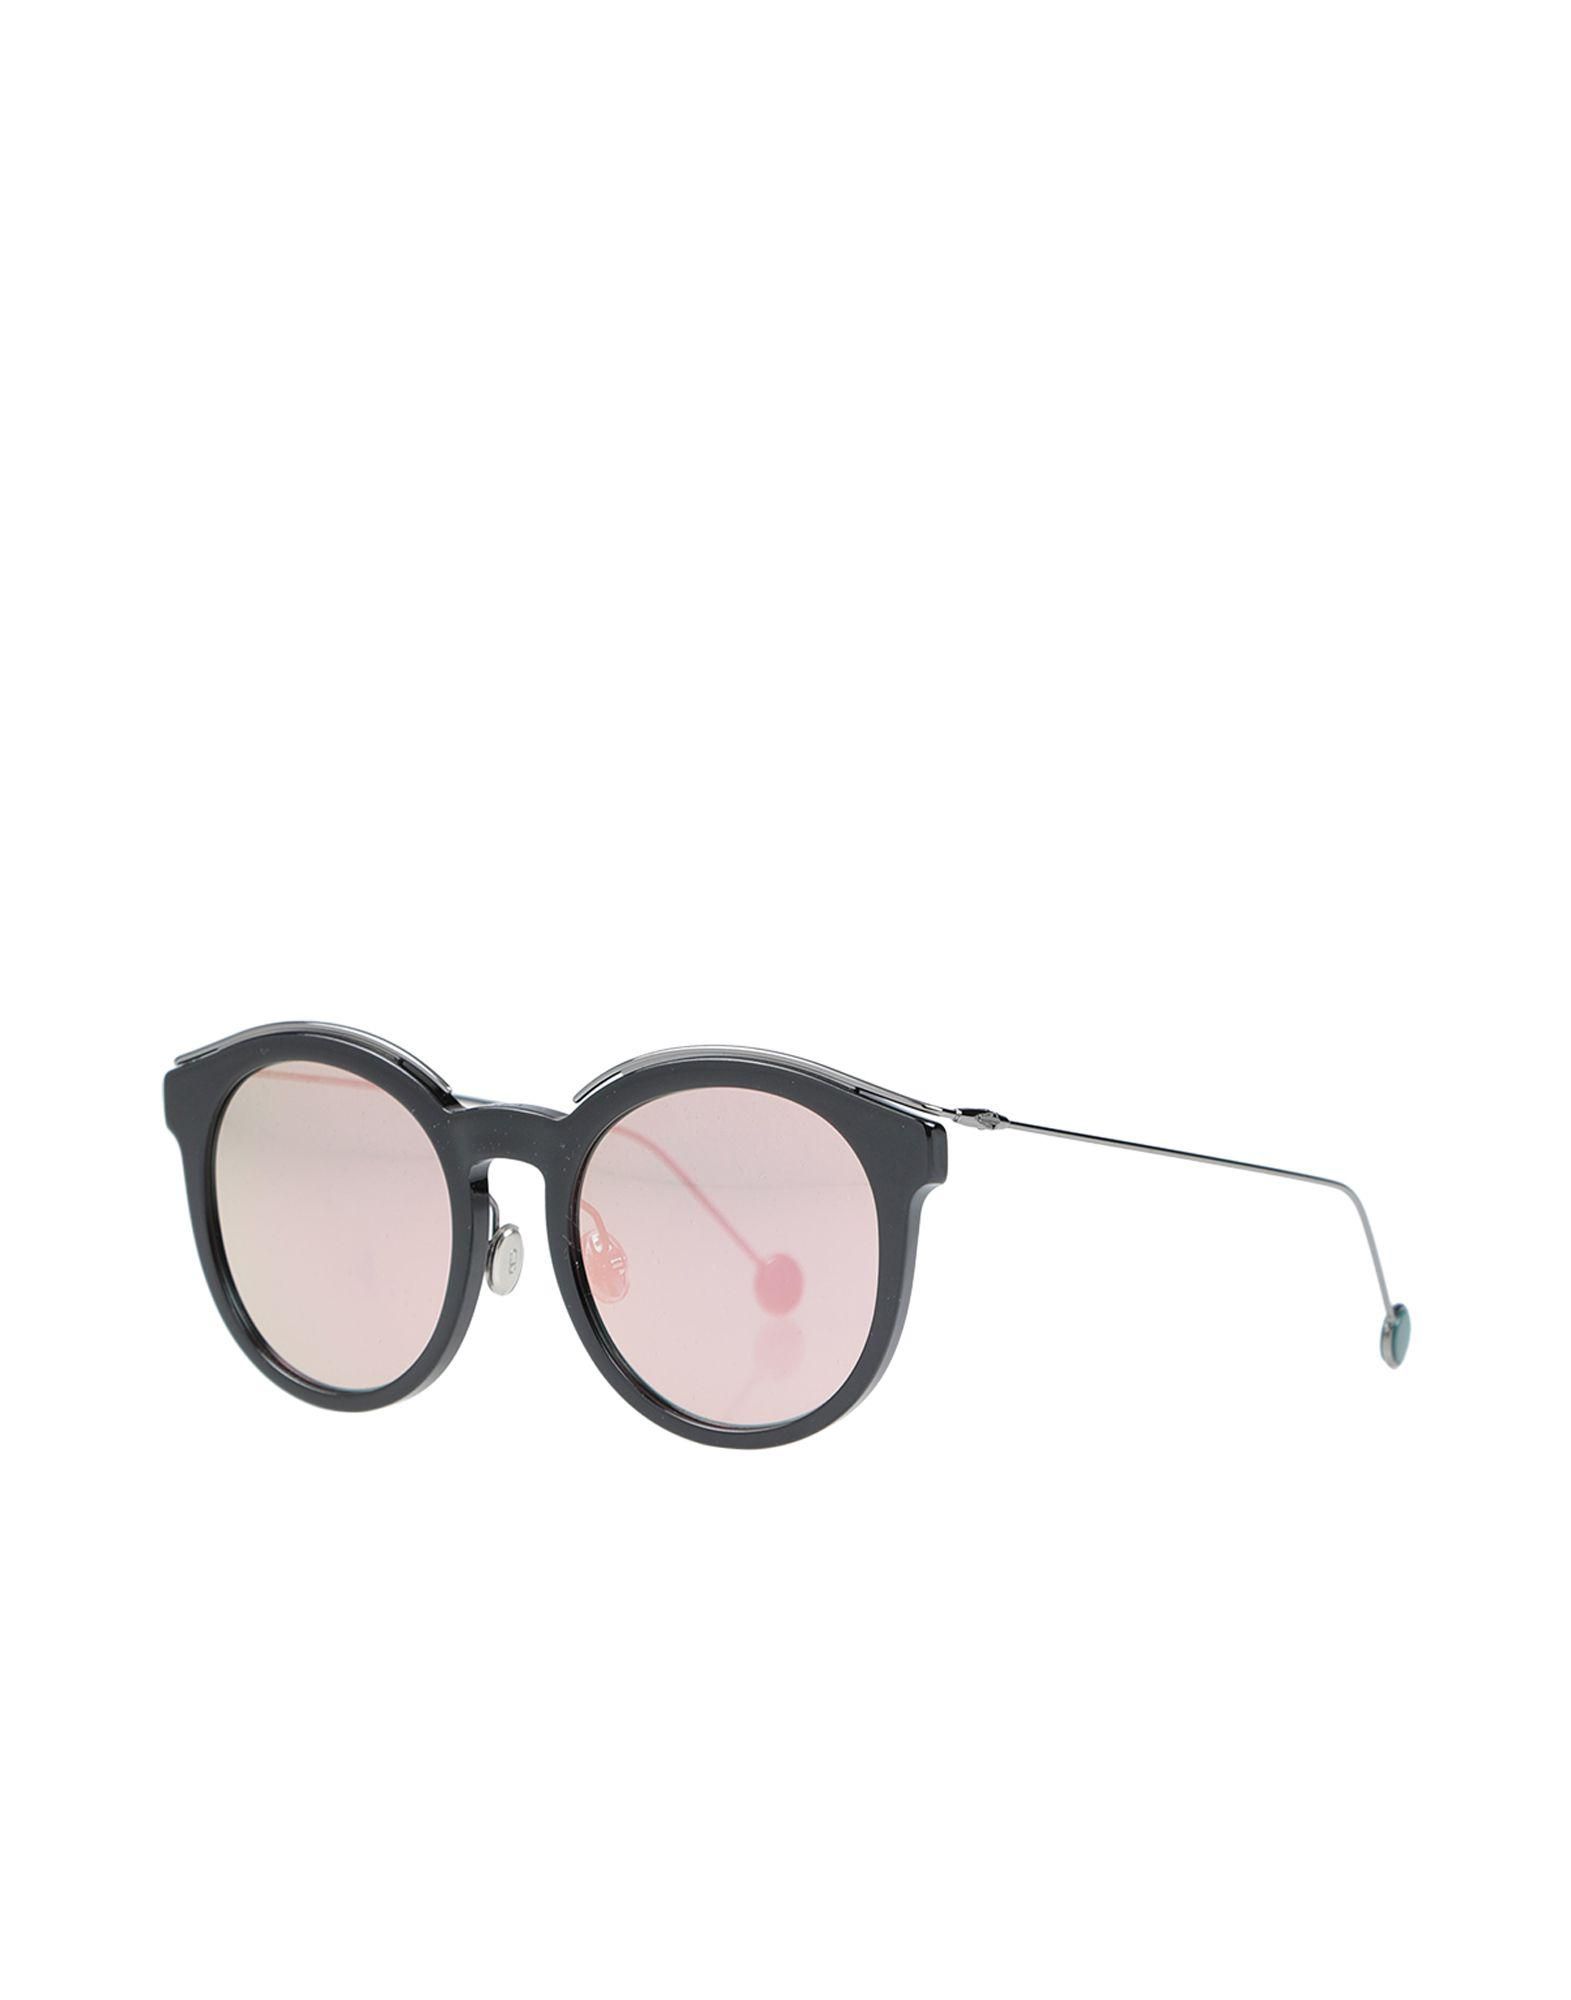 ca7d16c6323 Dior Sunglasses in Black - Lyst